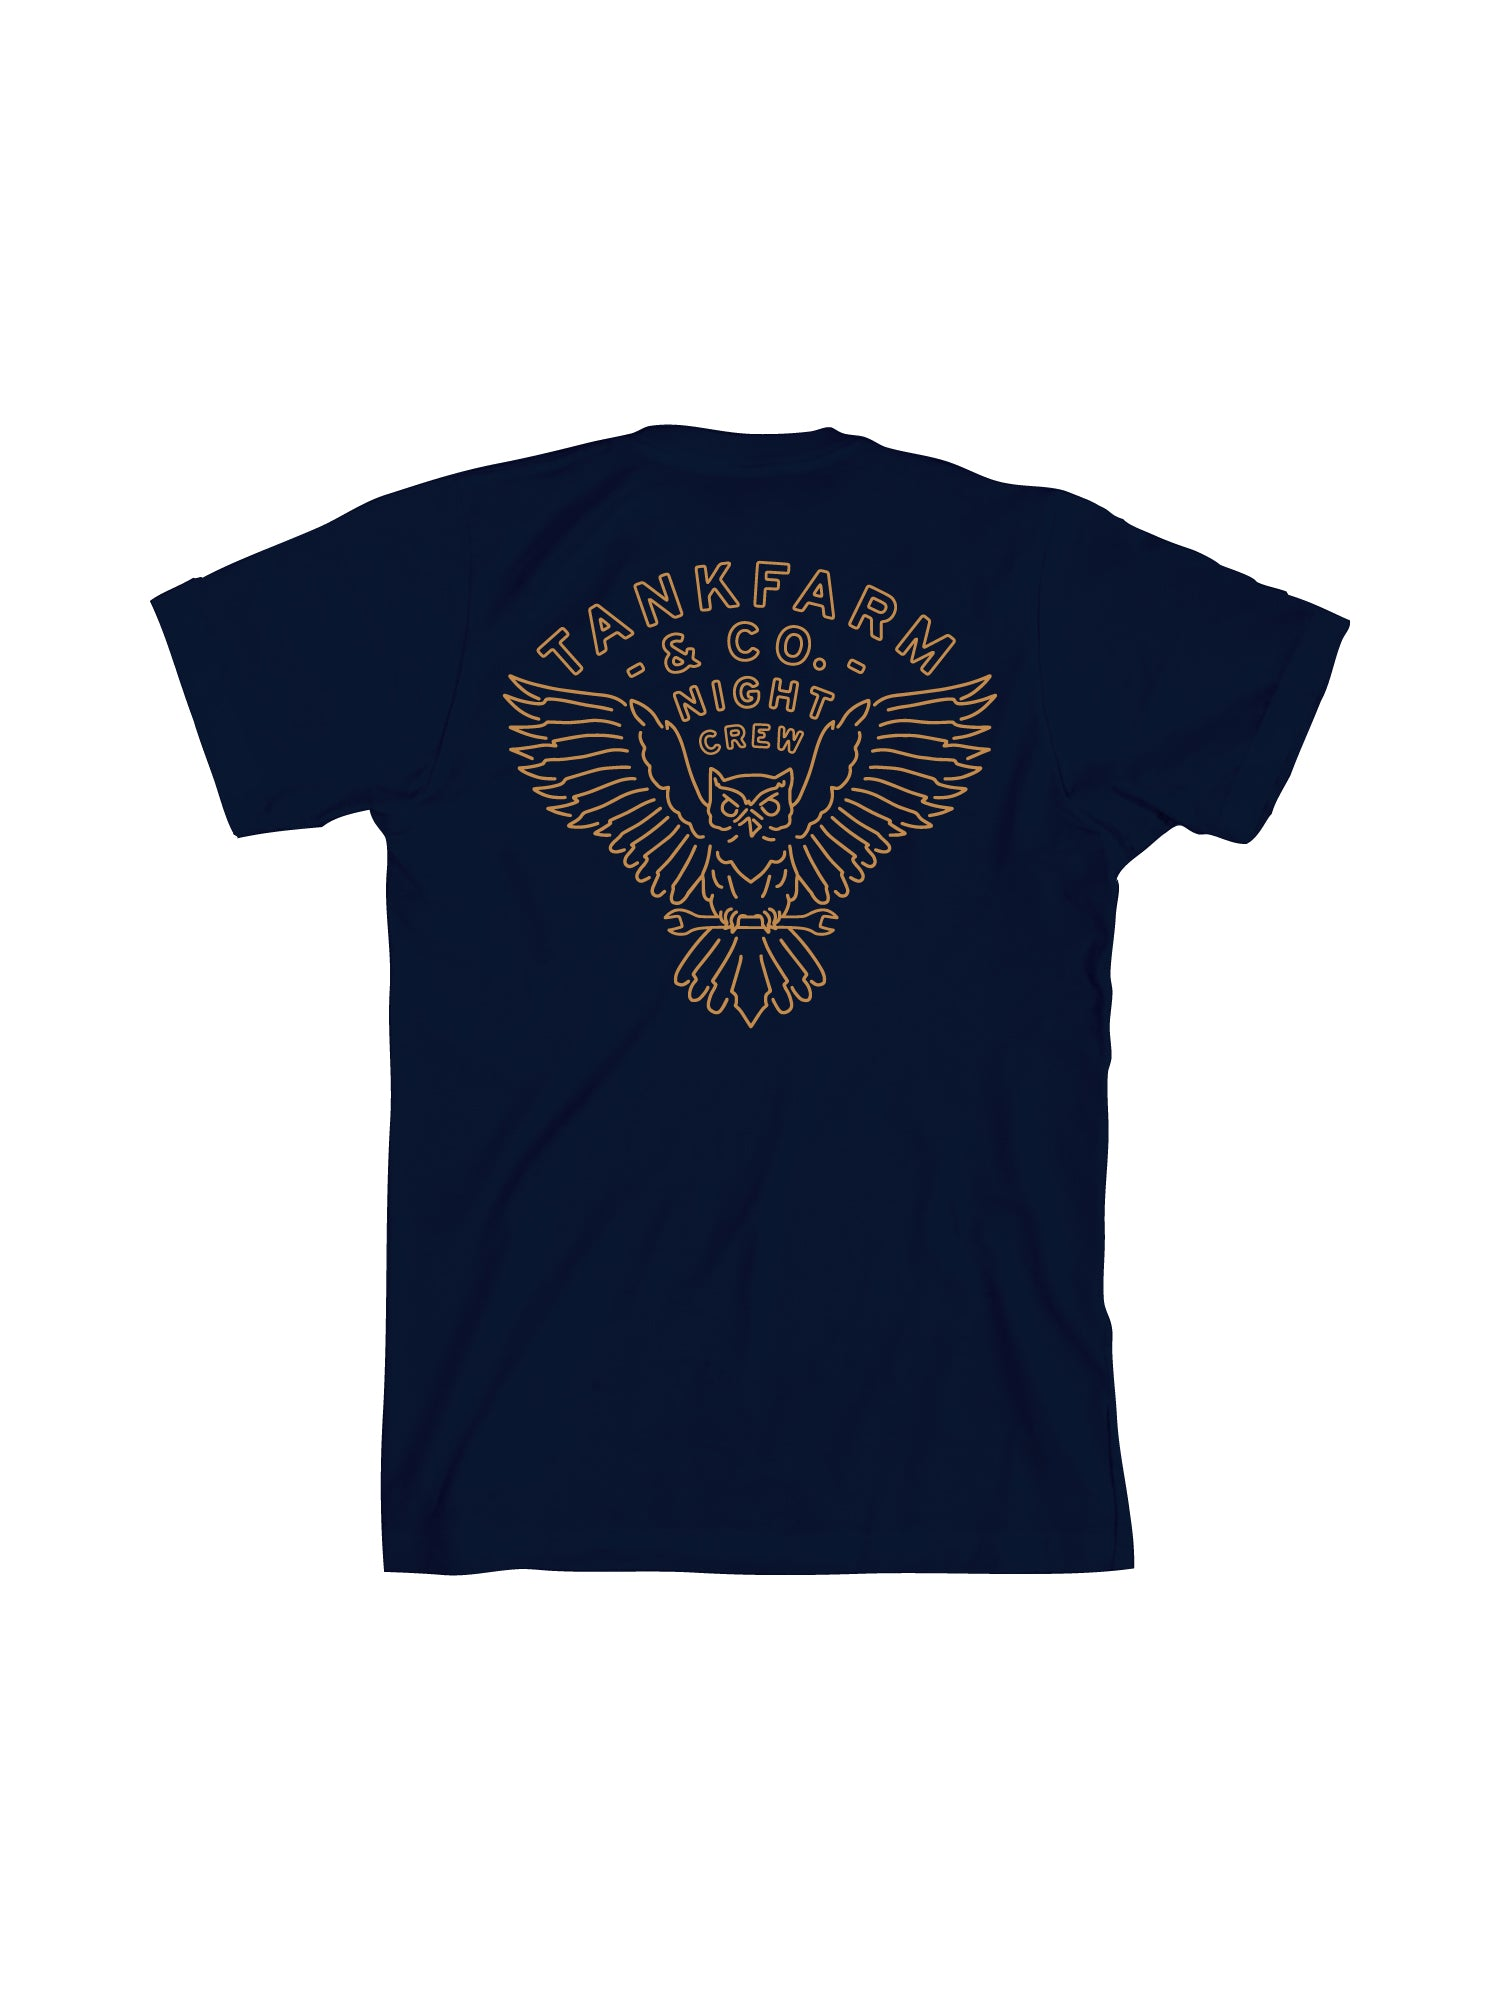 NIGHT WINGS - NAVY - Tankfarm & Co.